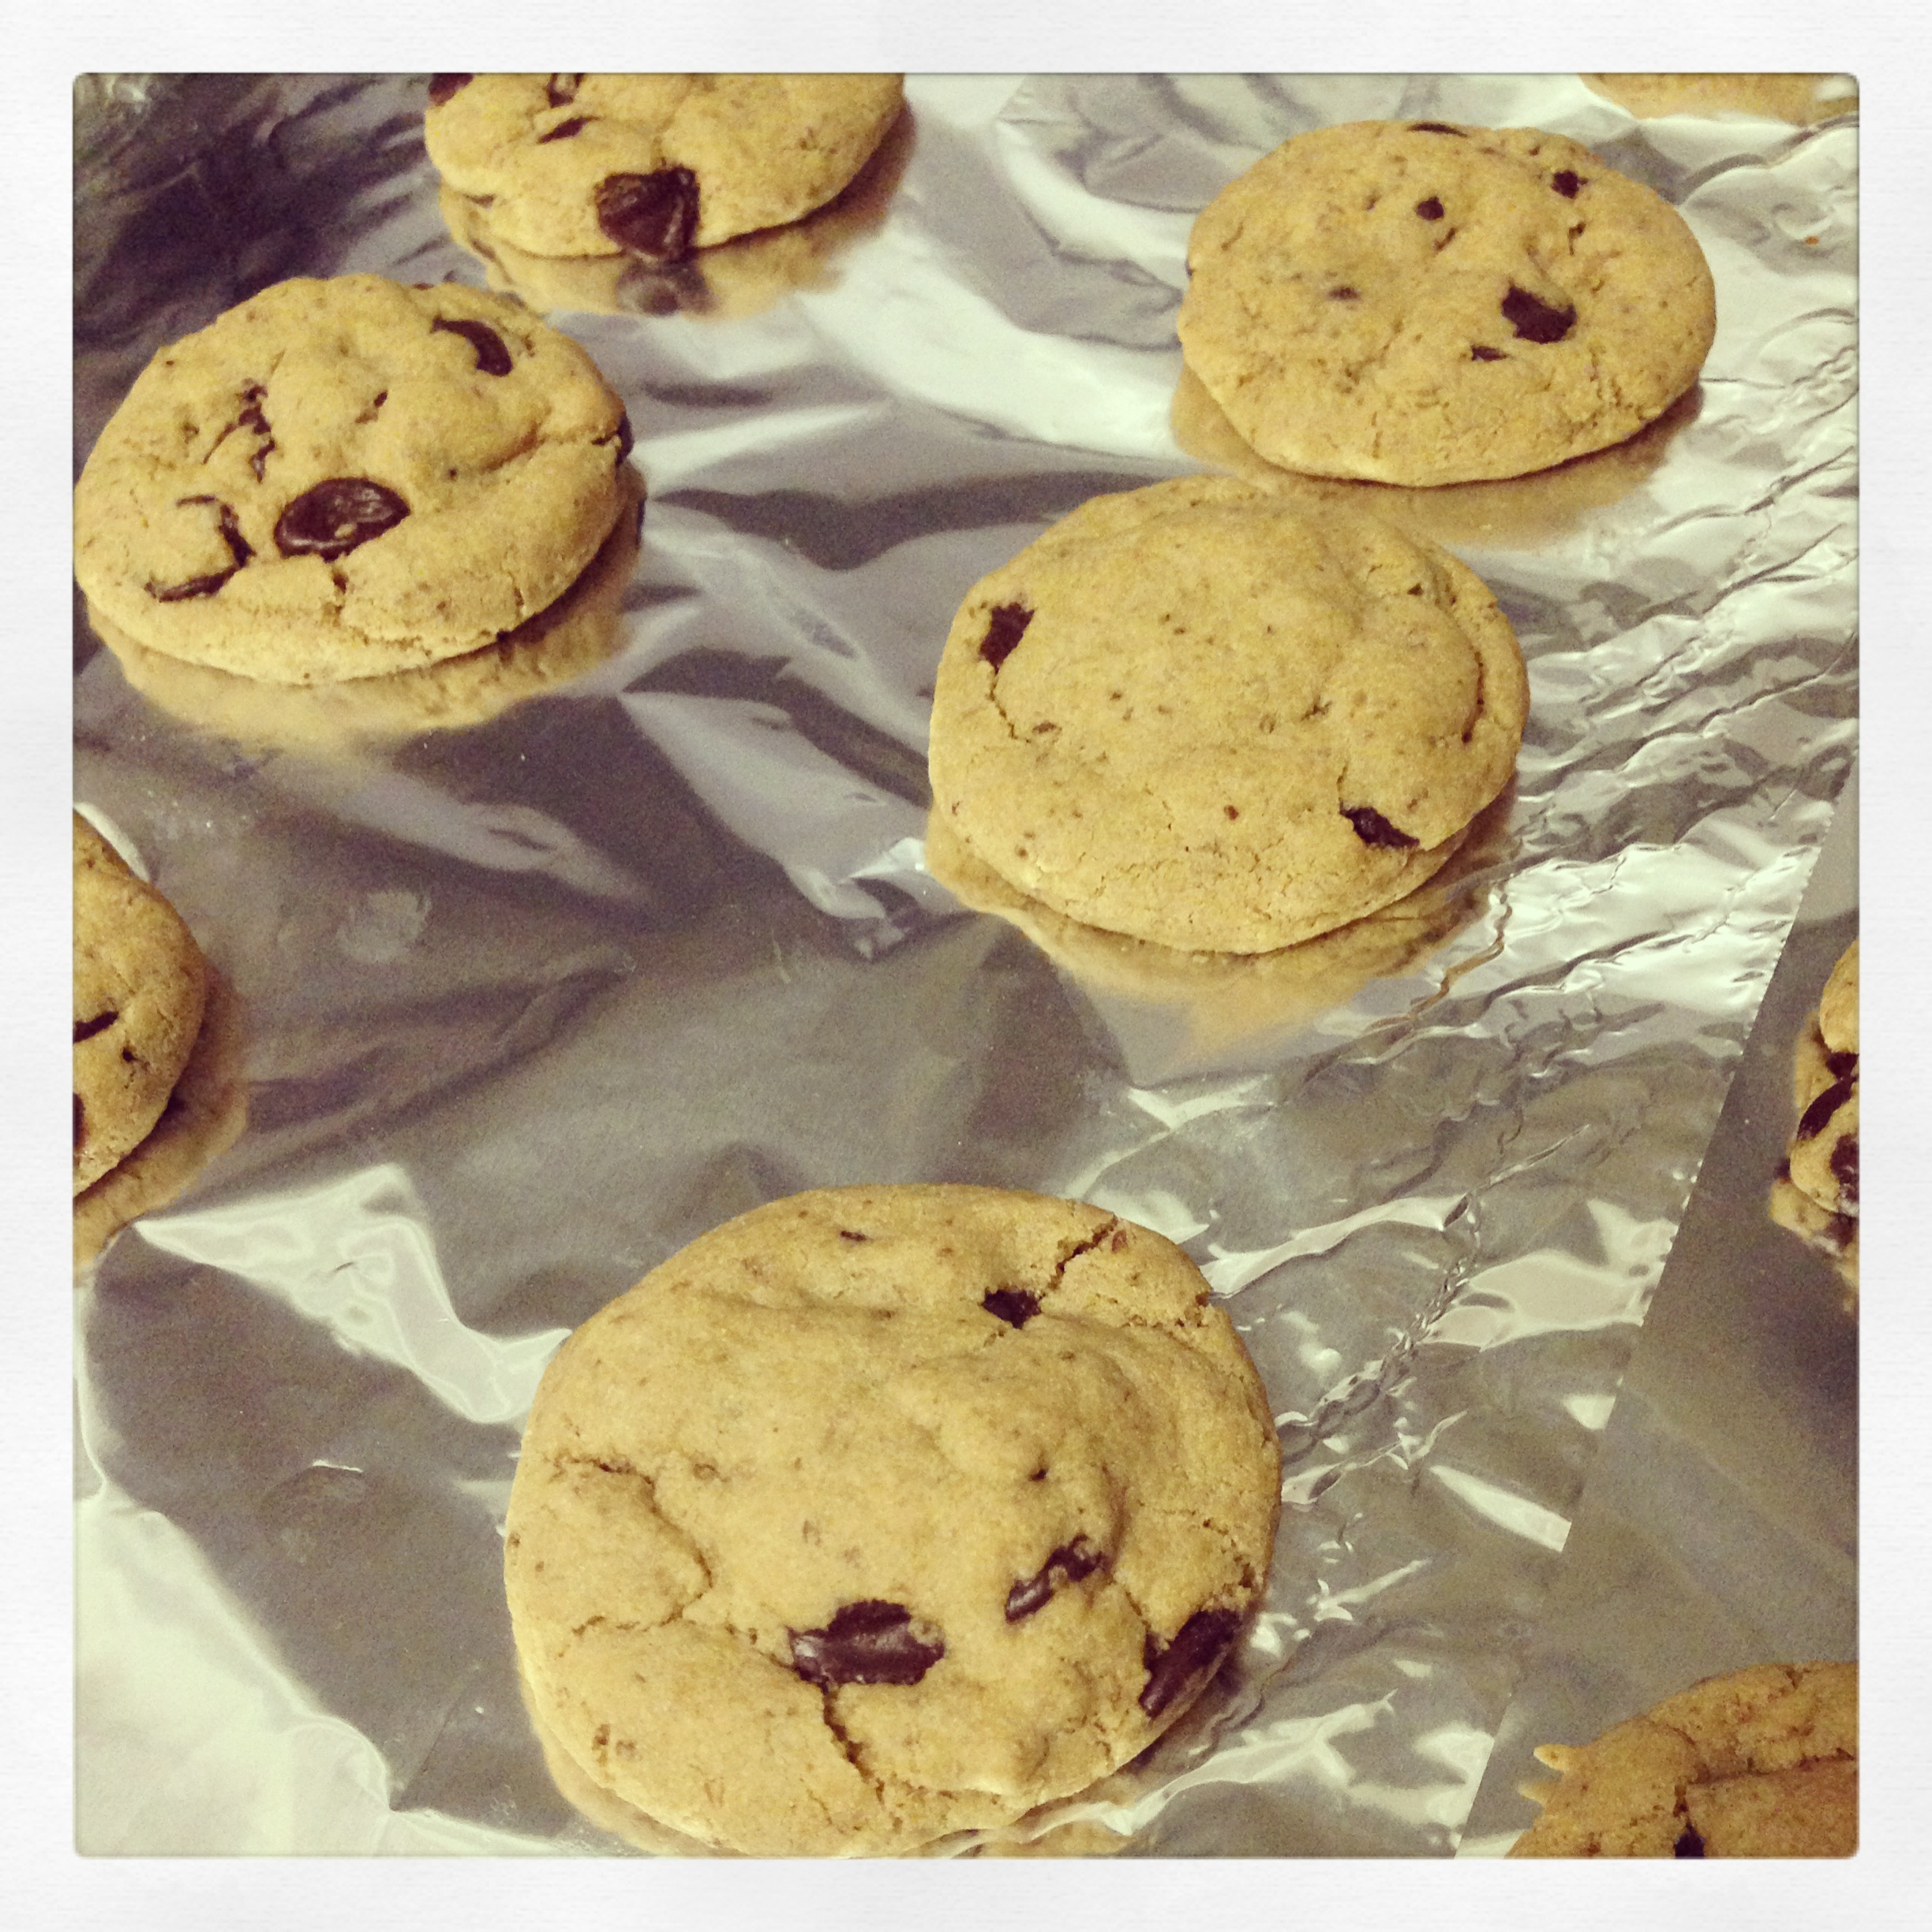 The only chocolate chip cookie recipe